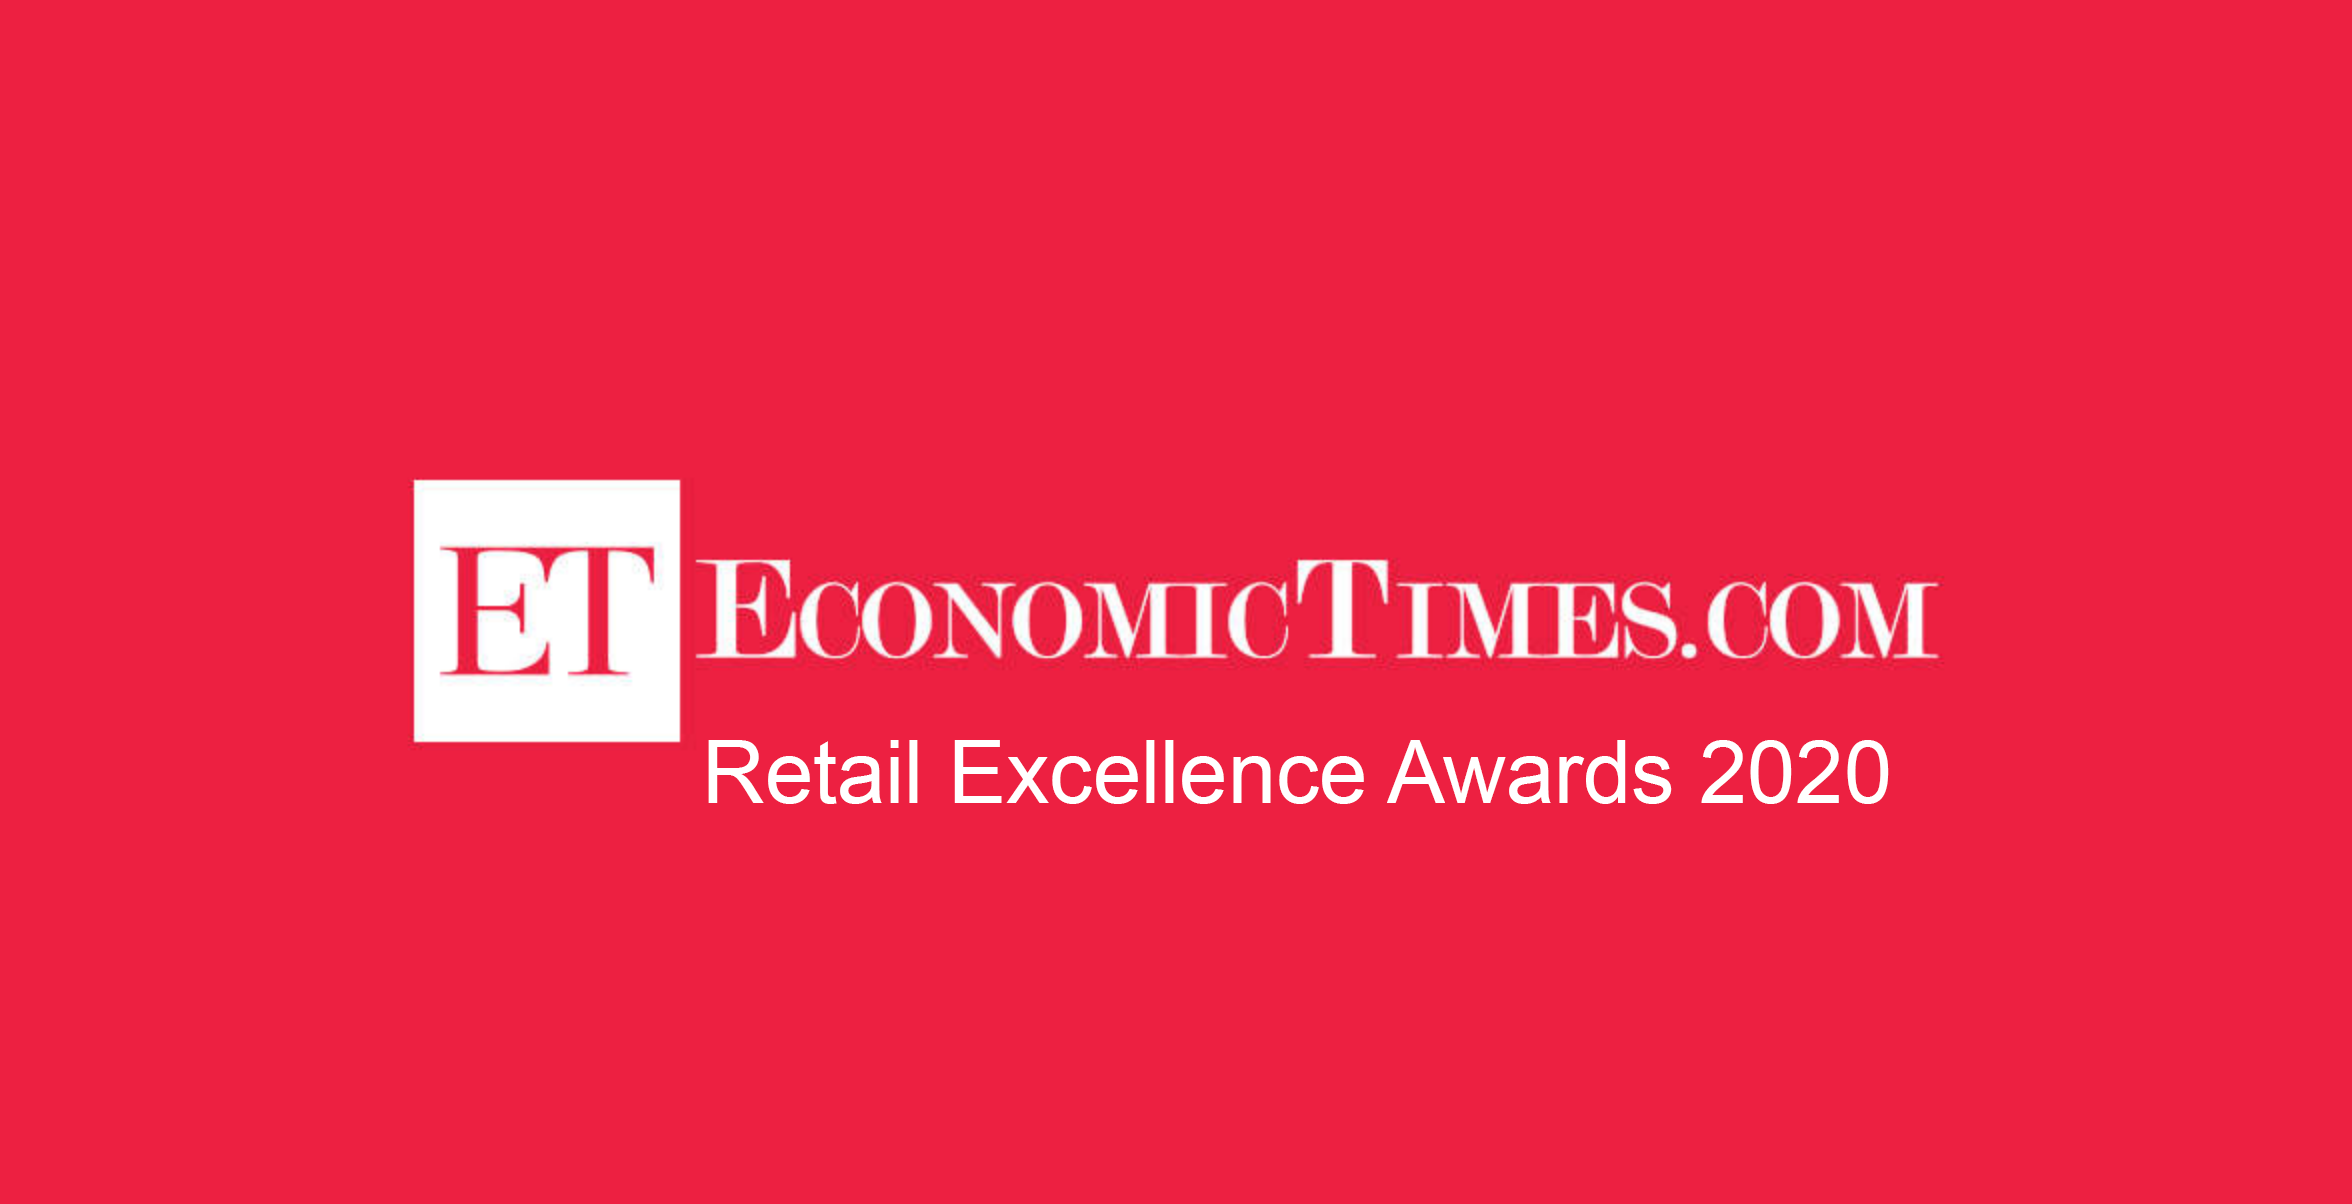 Retail Excellence Awards - ET